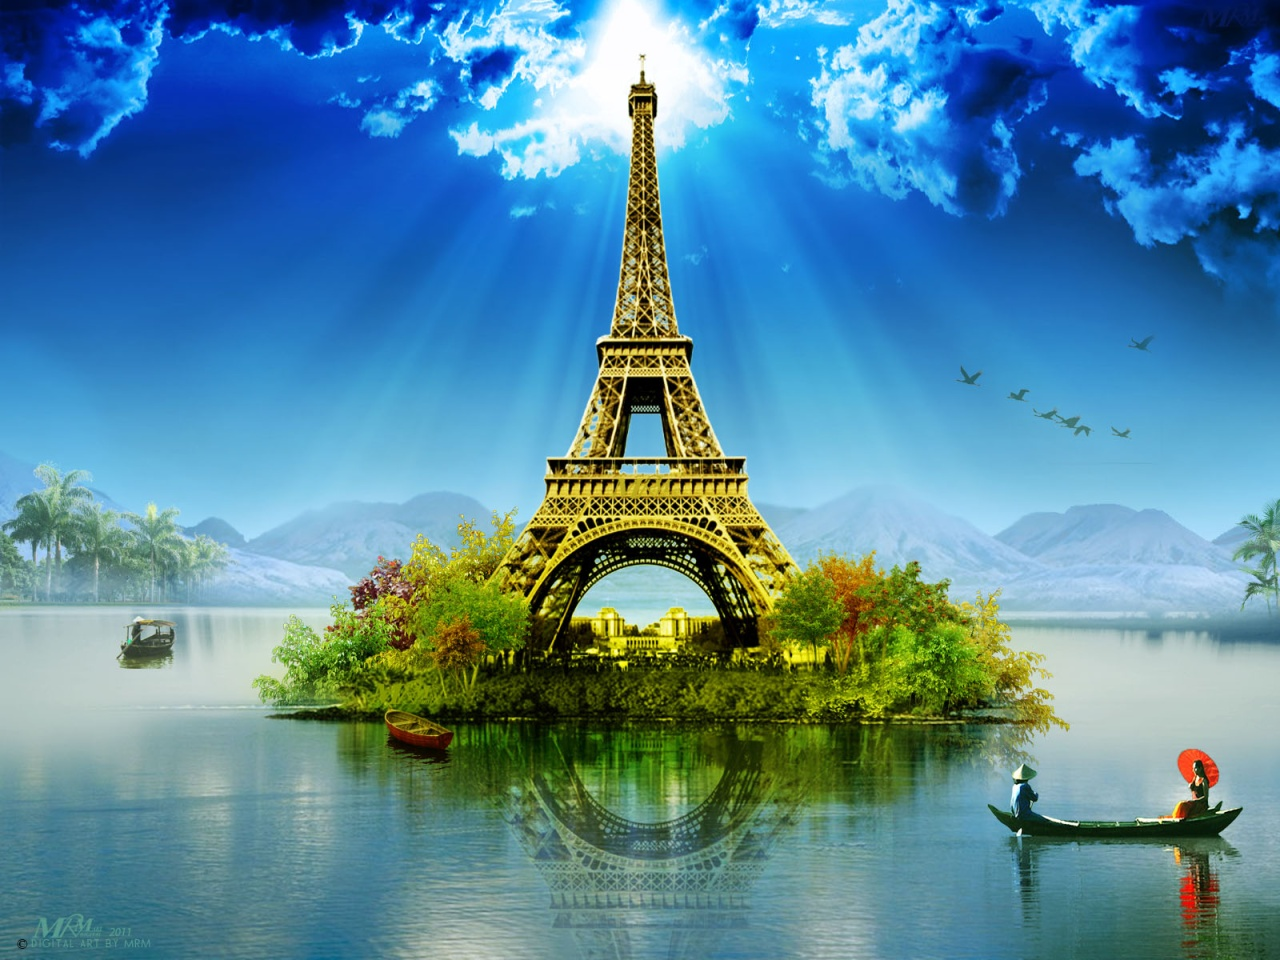 eiffel-tower-%C3%97-wallpaper-wpc5804544